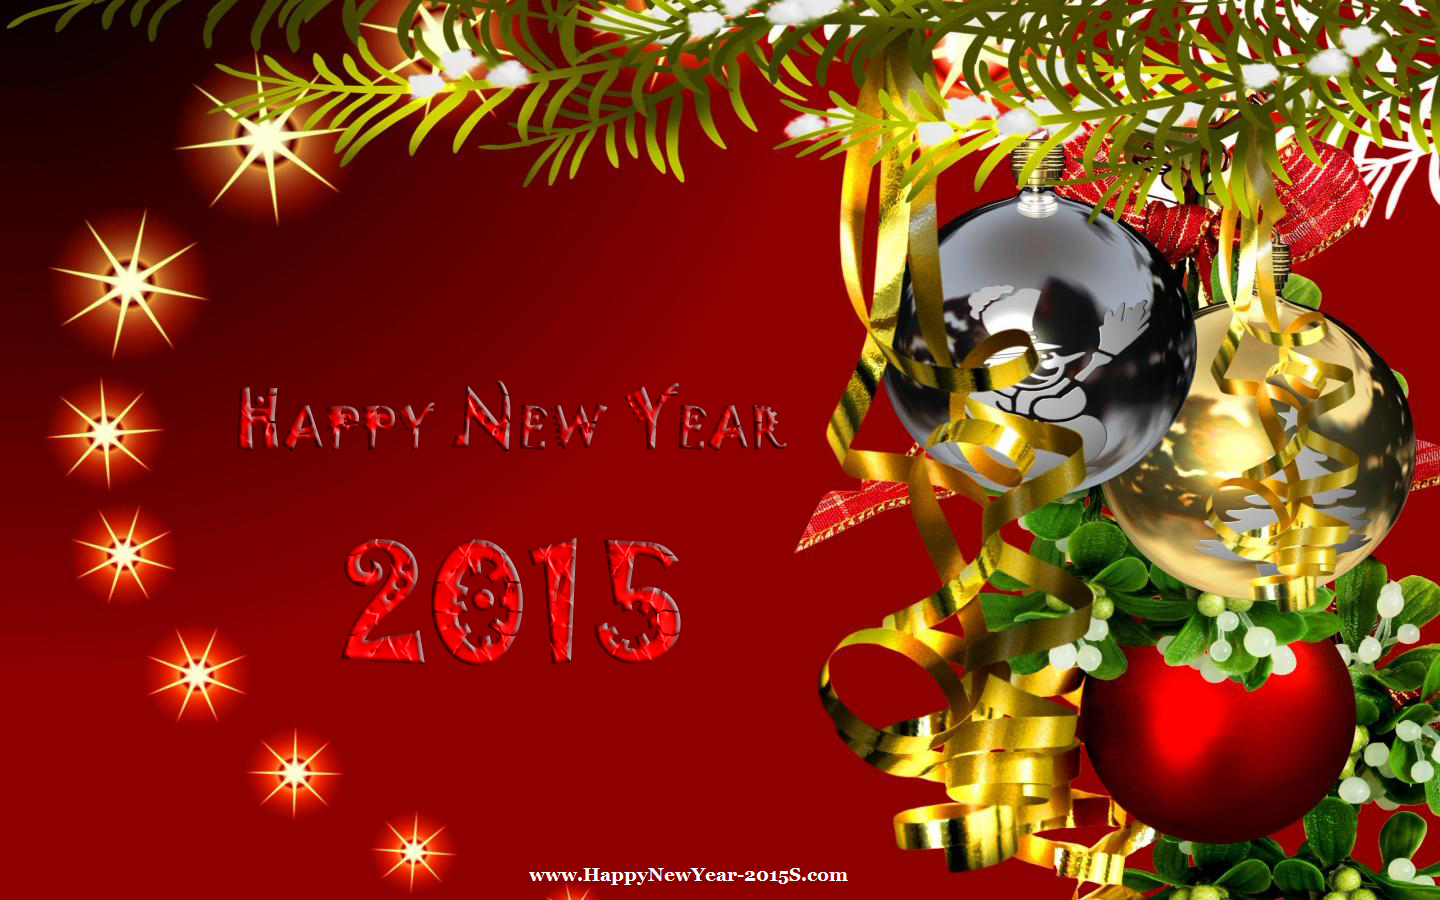 Wallpaper download new year 2015 - Happy New Year Wallpapers Download